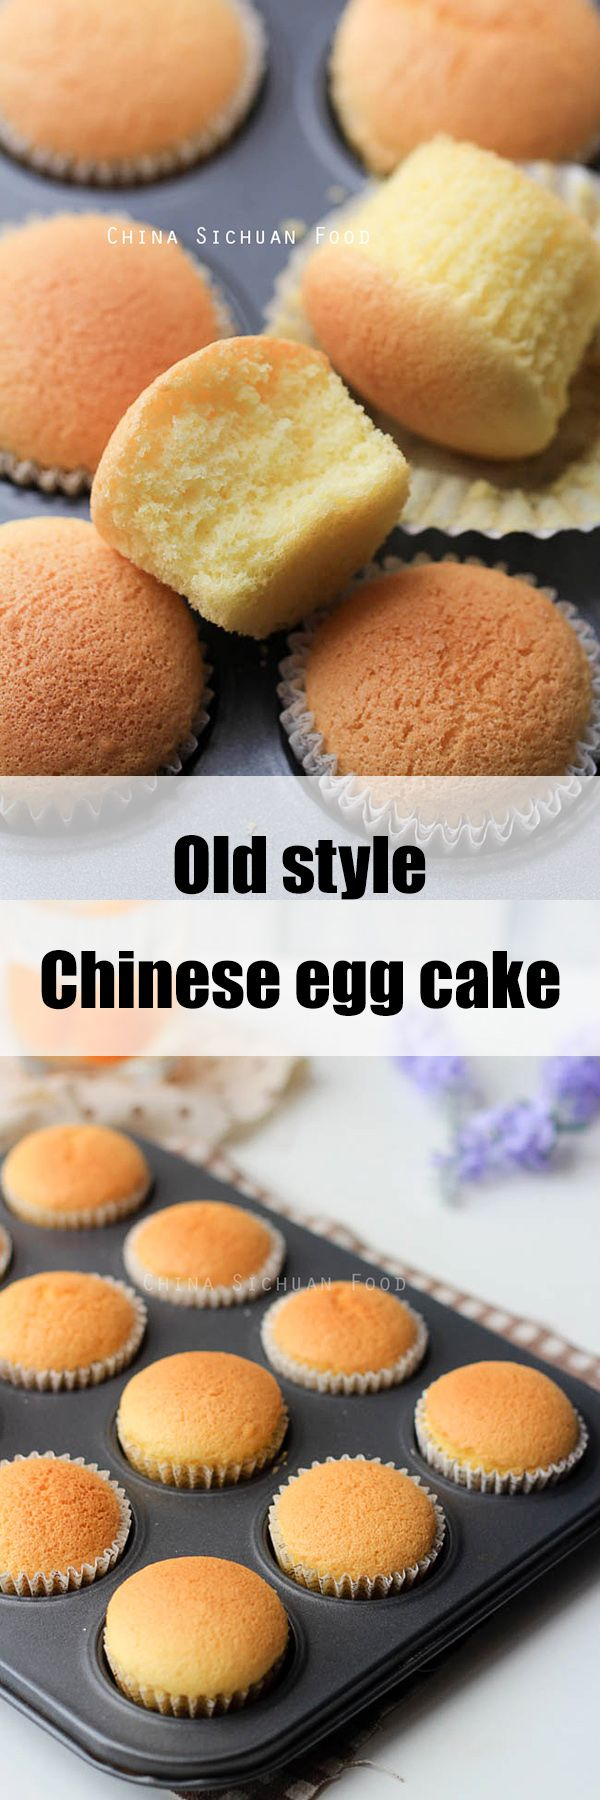 Chinese Egg Cake—Old Style Baked Version